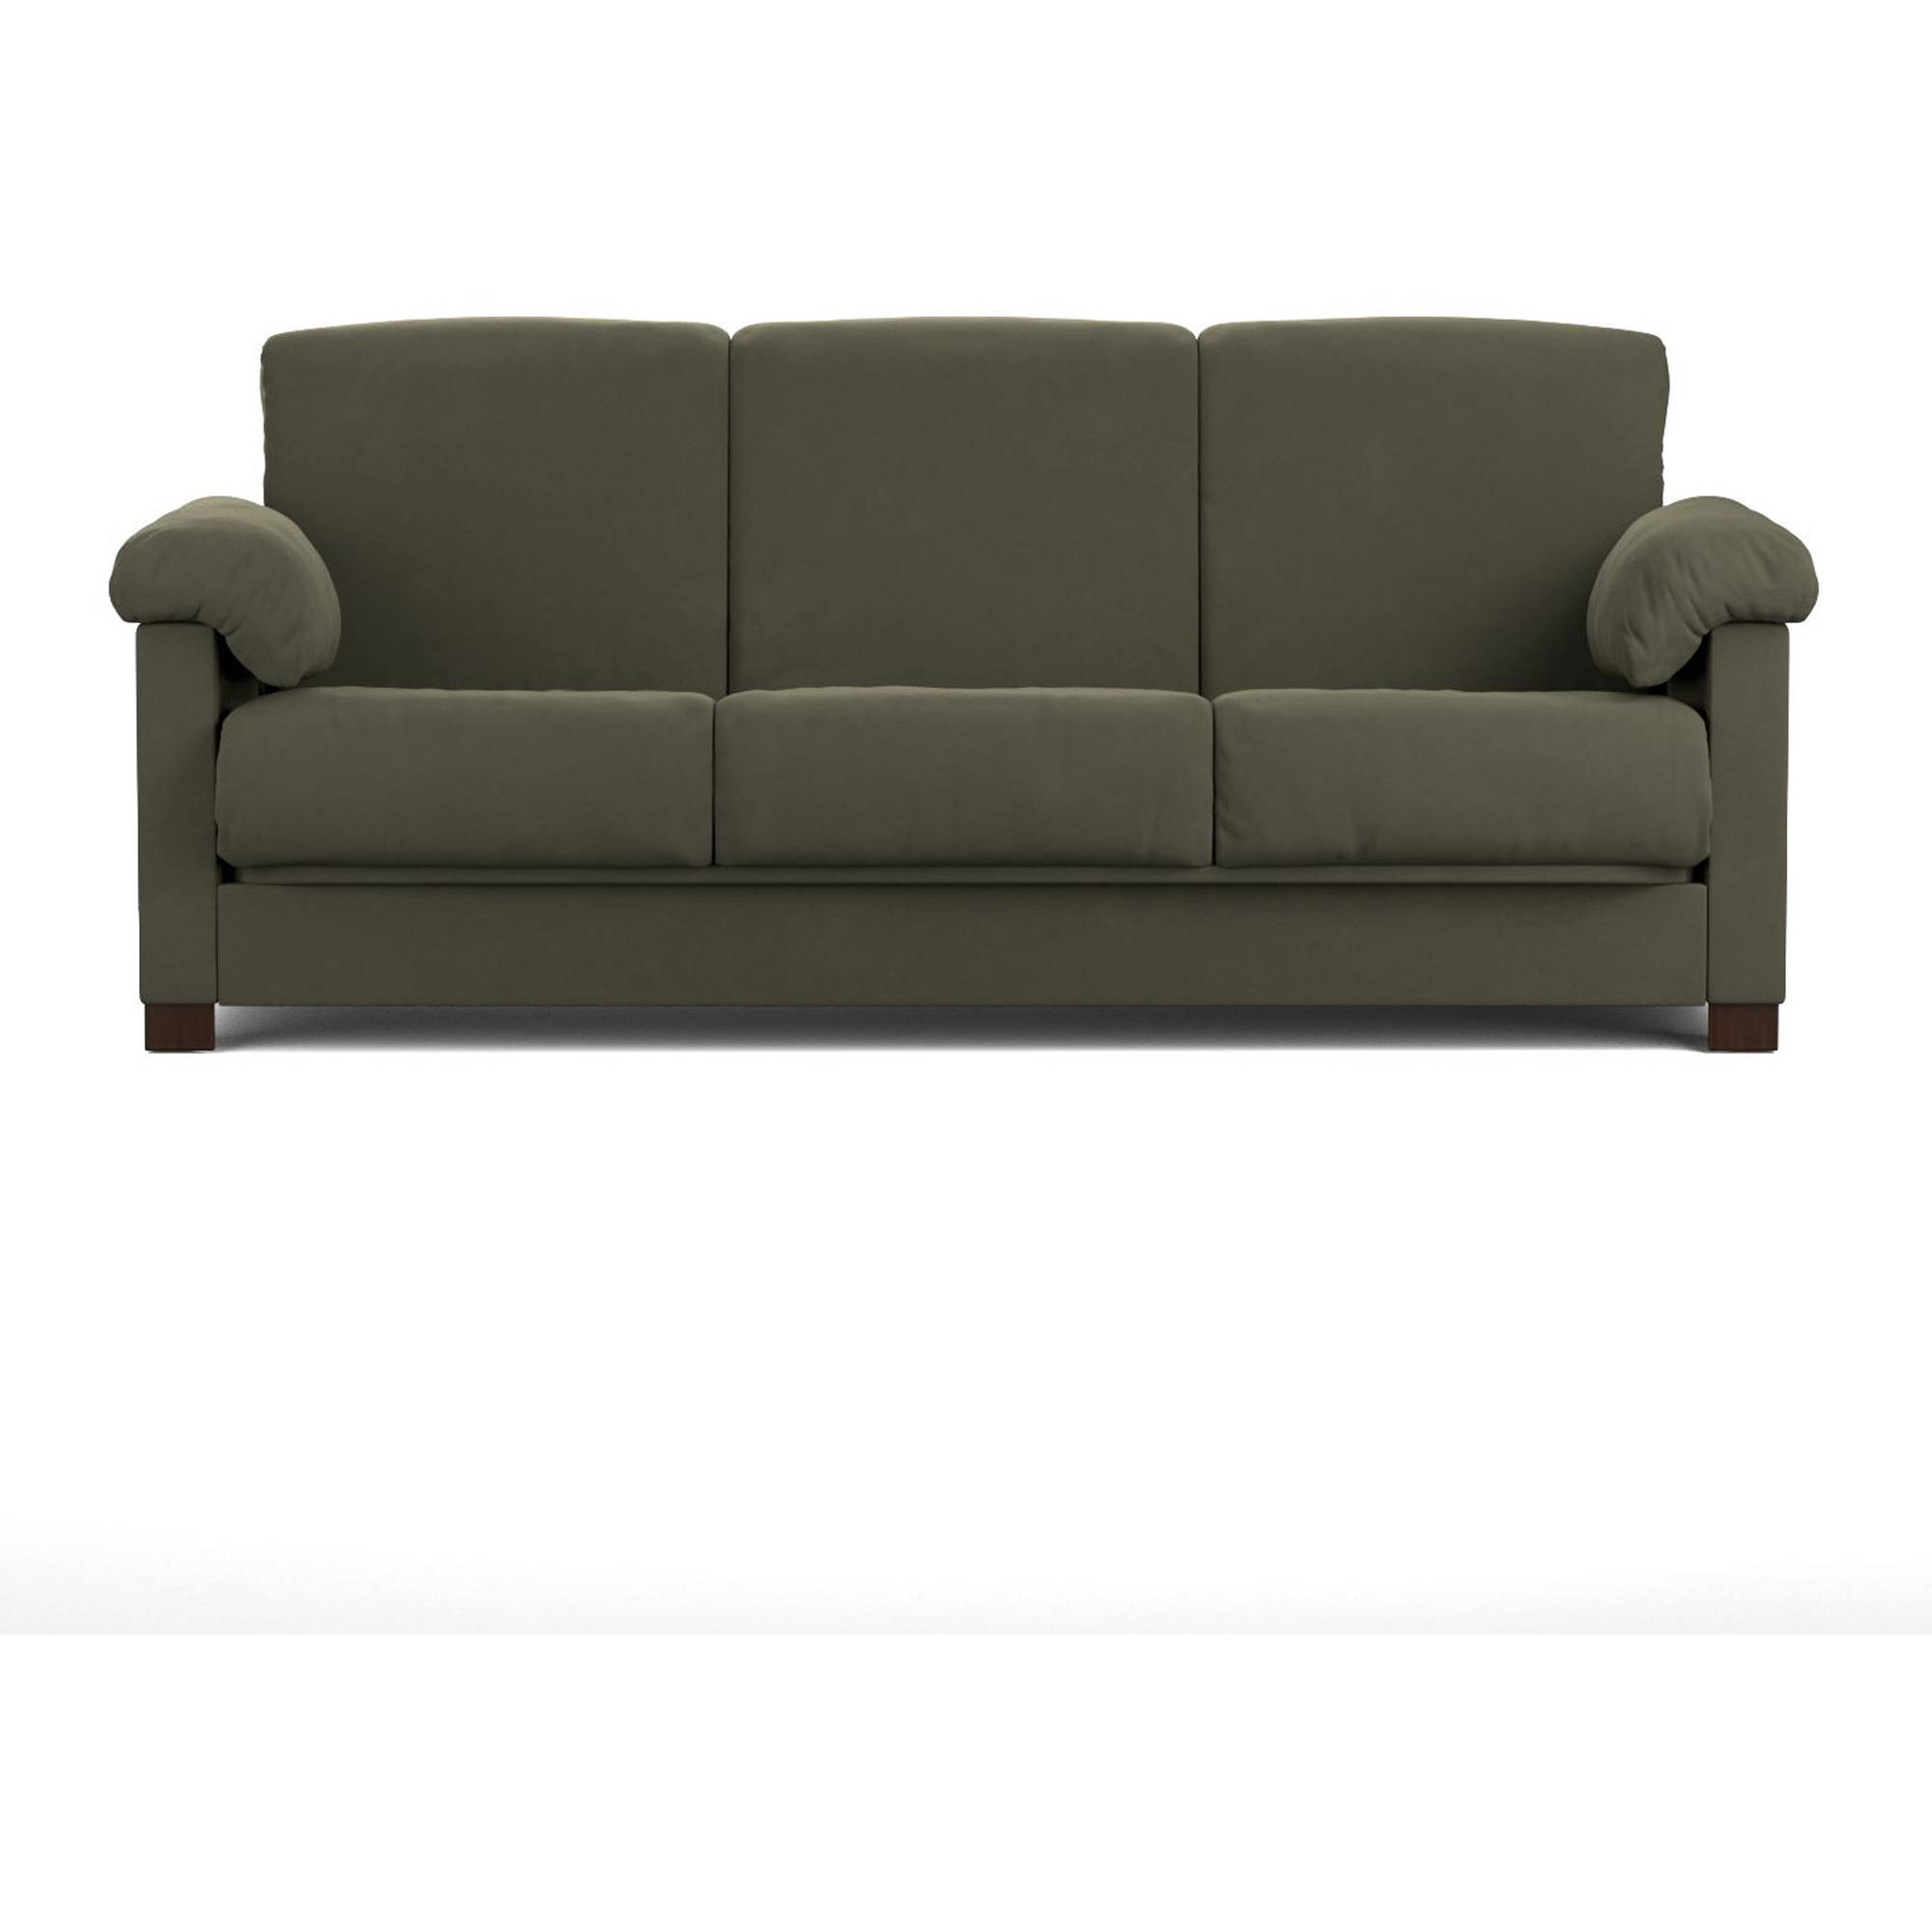 Montero convert a couch sofa bed instructions sofa review for Montero convert a couch sofa bed